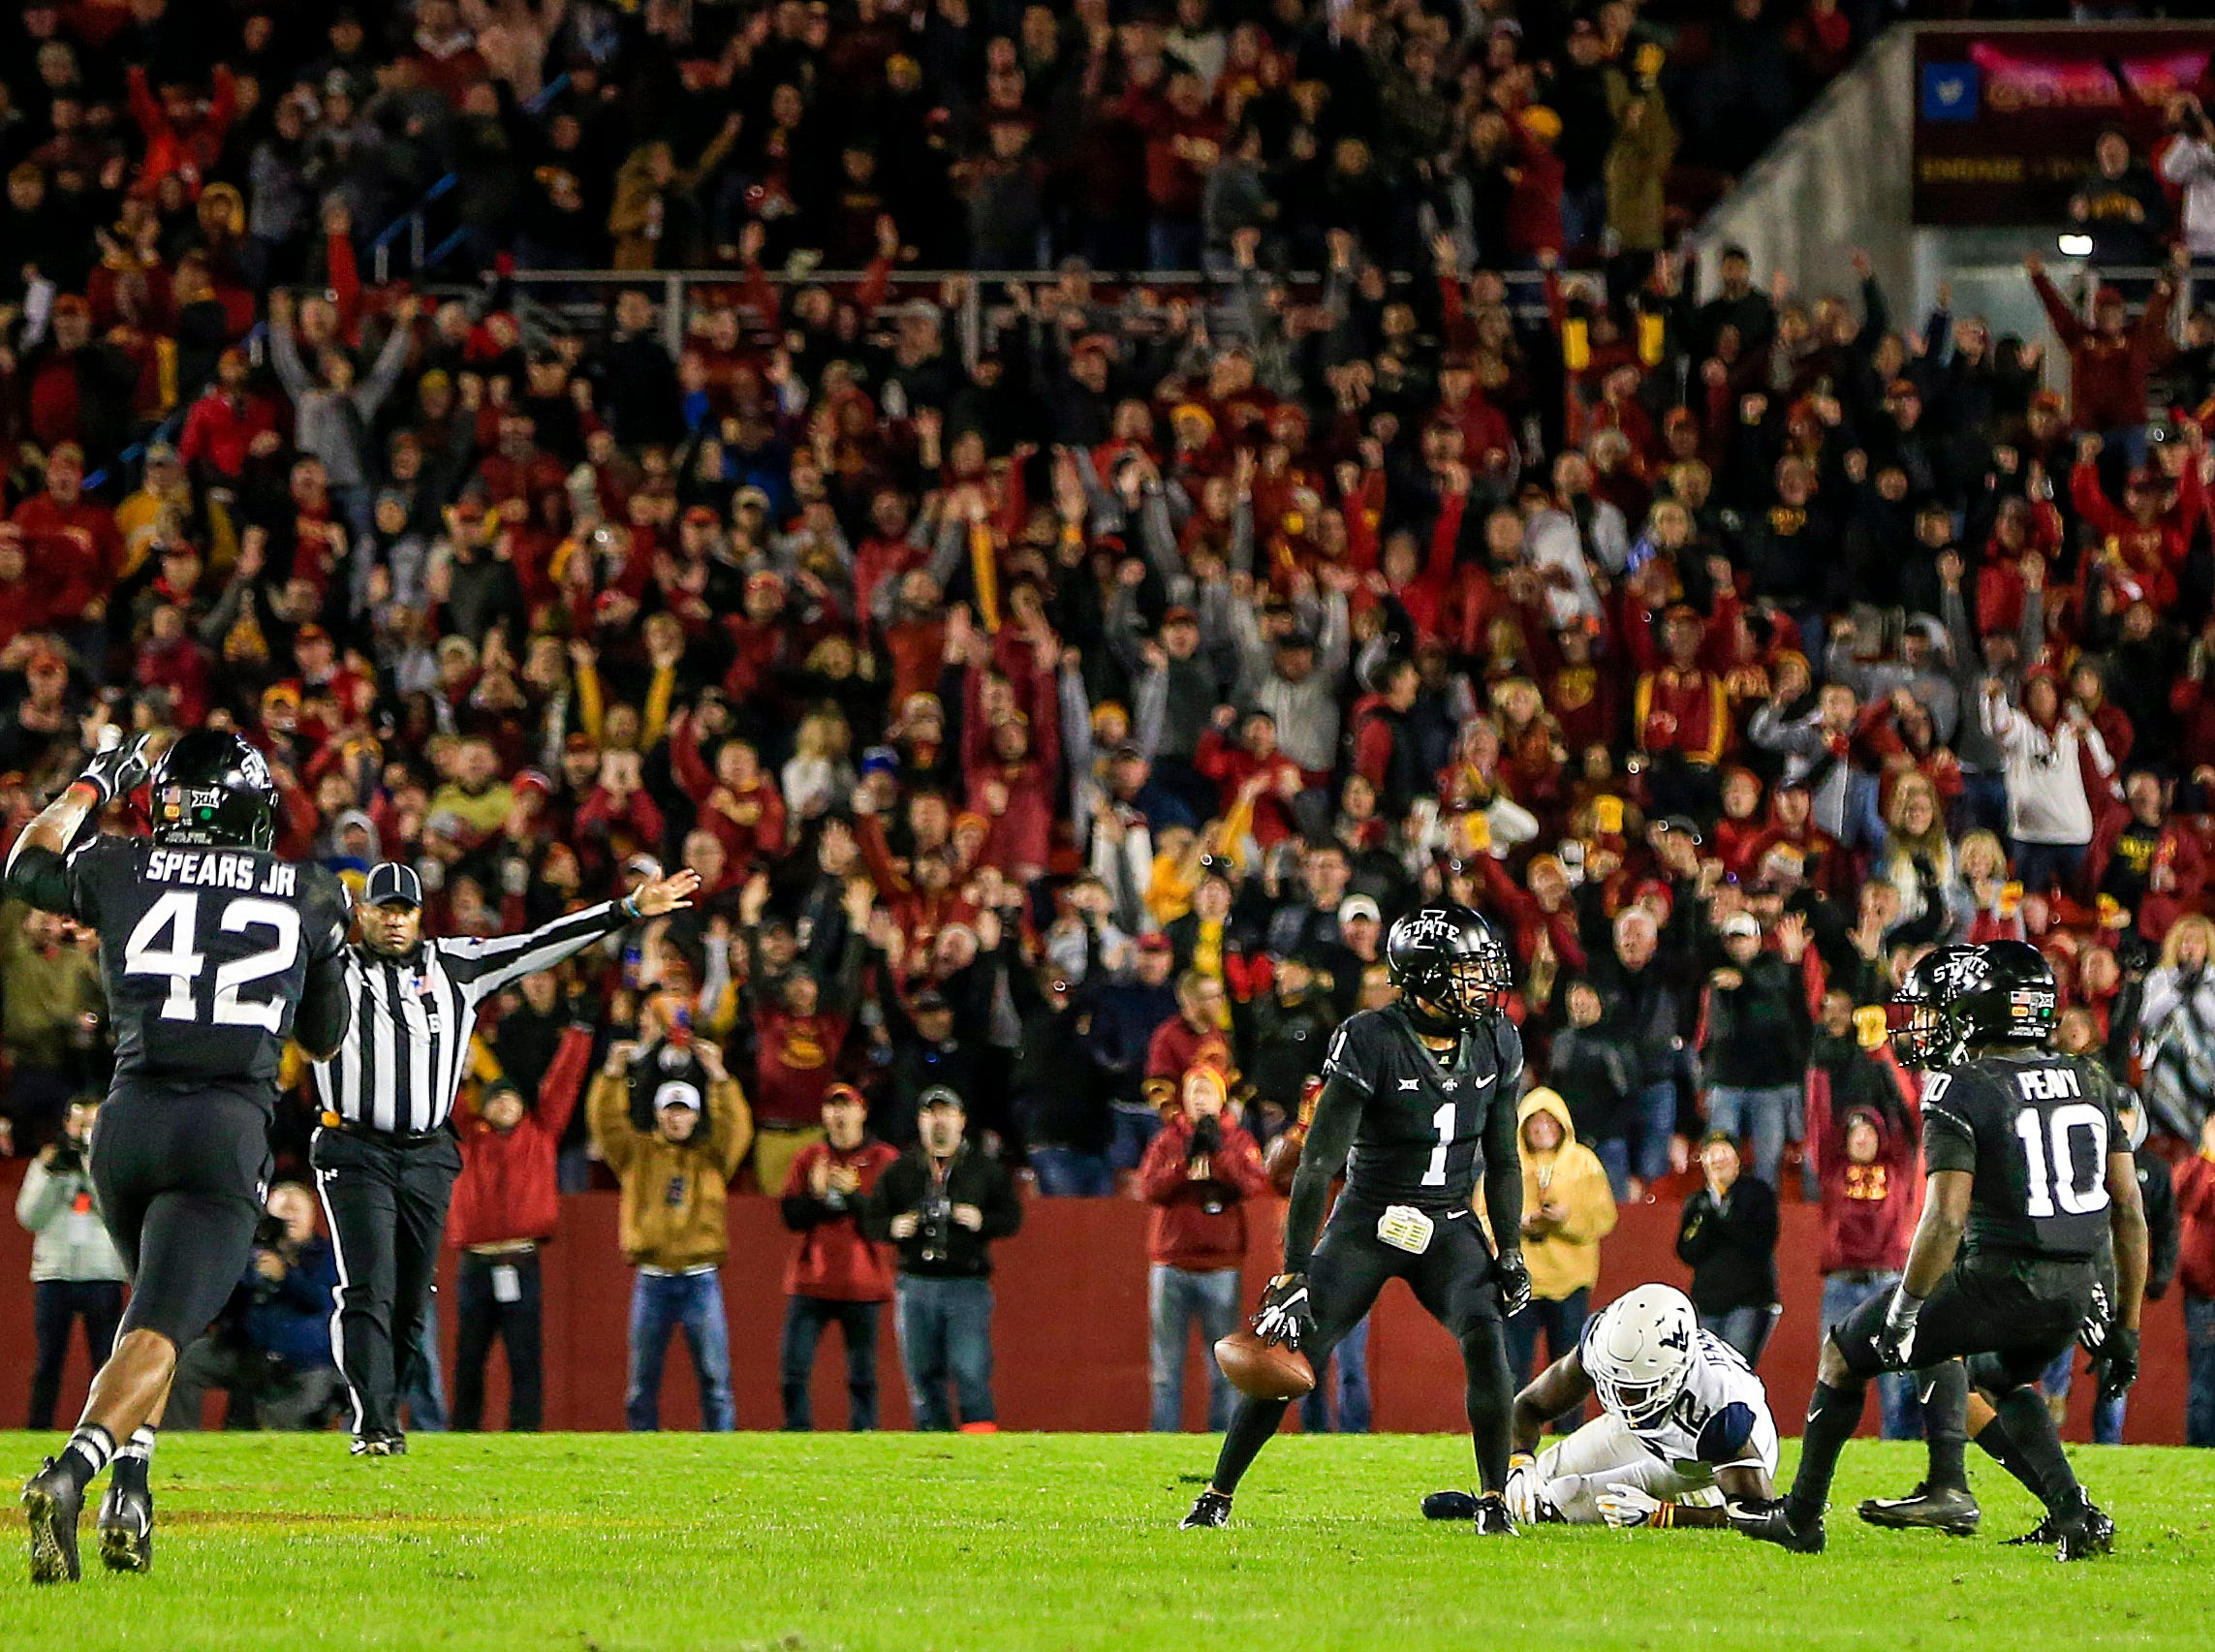 D'Andre Payne (1) intercepts a pass from West Virginia during the Iowa State West Virginia game at Jack Trice Stadium Saturday, Oct. 13, 2018.